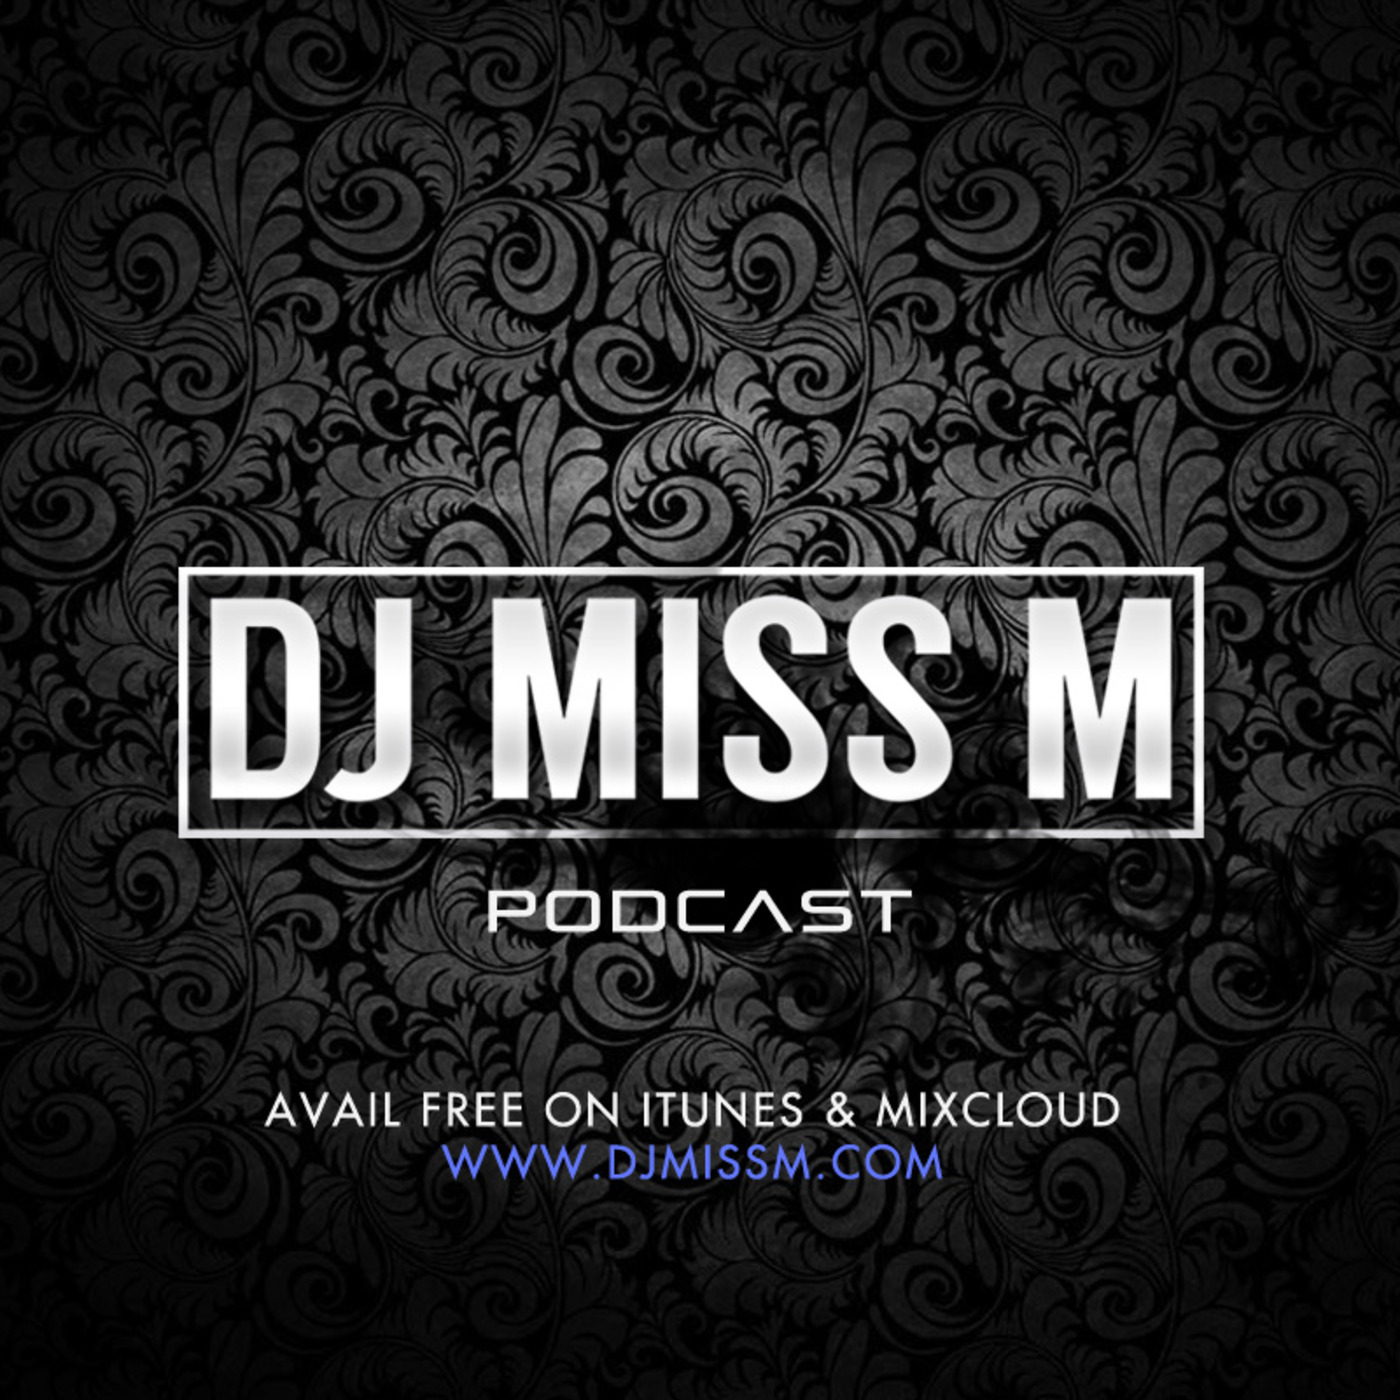 DJ MISS M Podcasts | Listen Free on Castbox